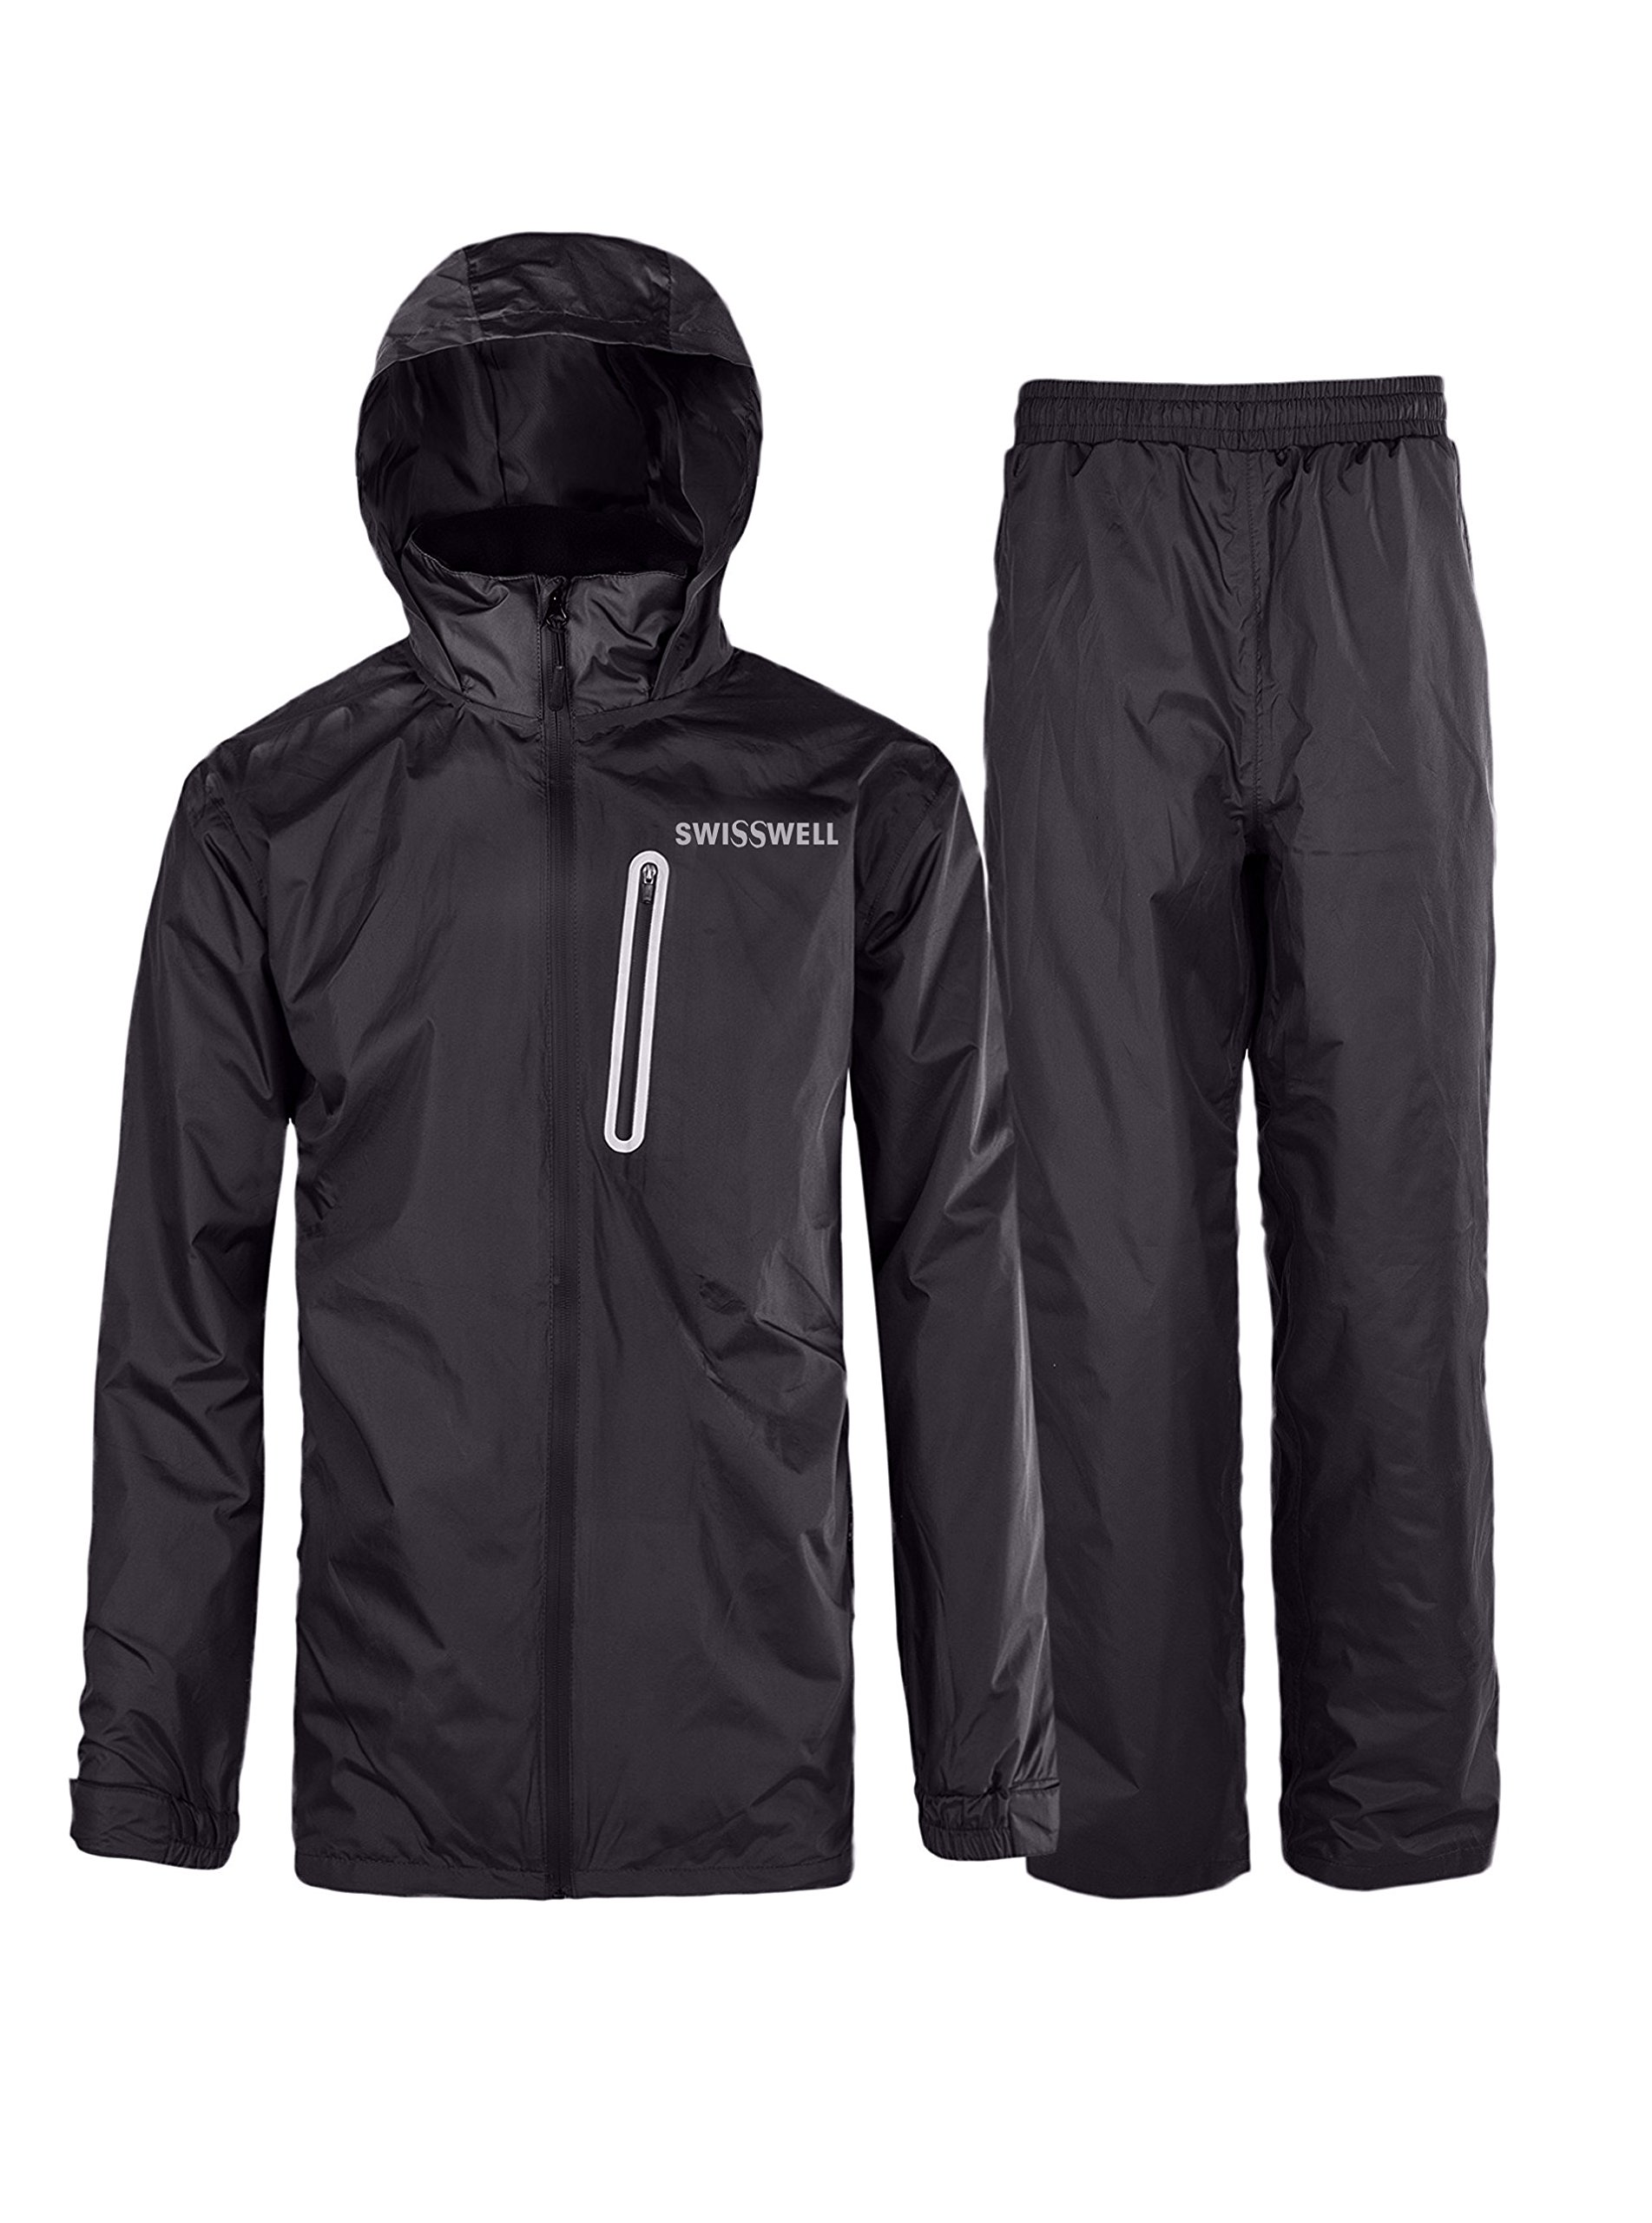 SWISSWELL Mens Waterproof Rainsuit with Hood Charcoal Large by SWISSWELL